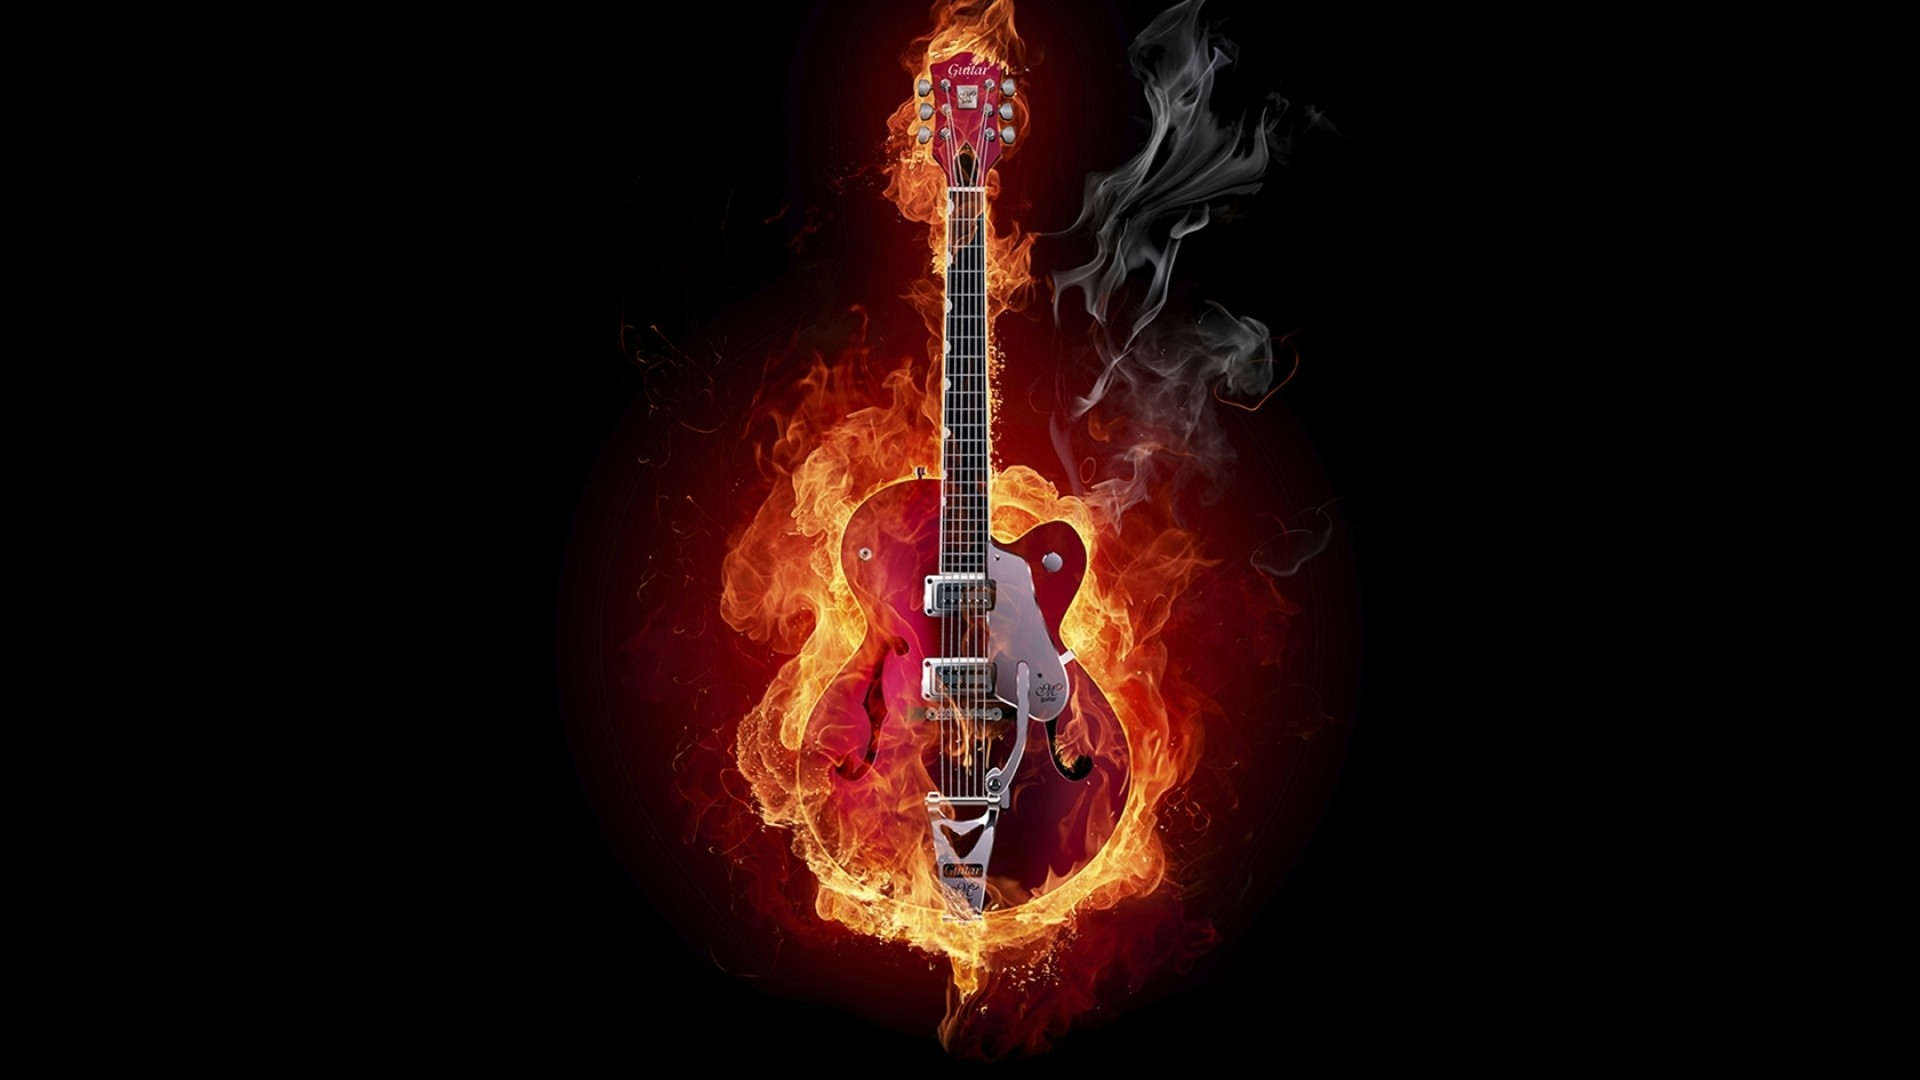 1920x1080 Preview wallpaper guitar, fire, instrument, smoke, background